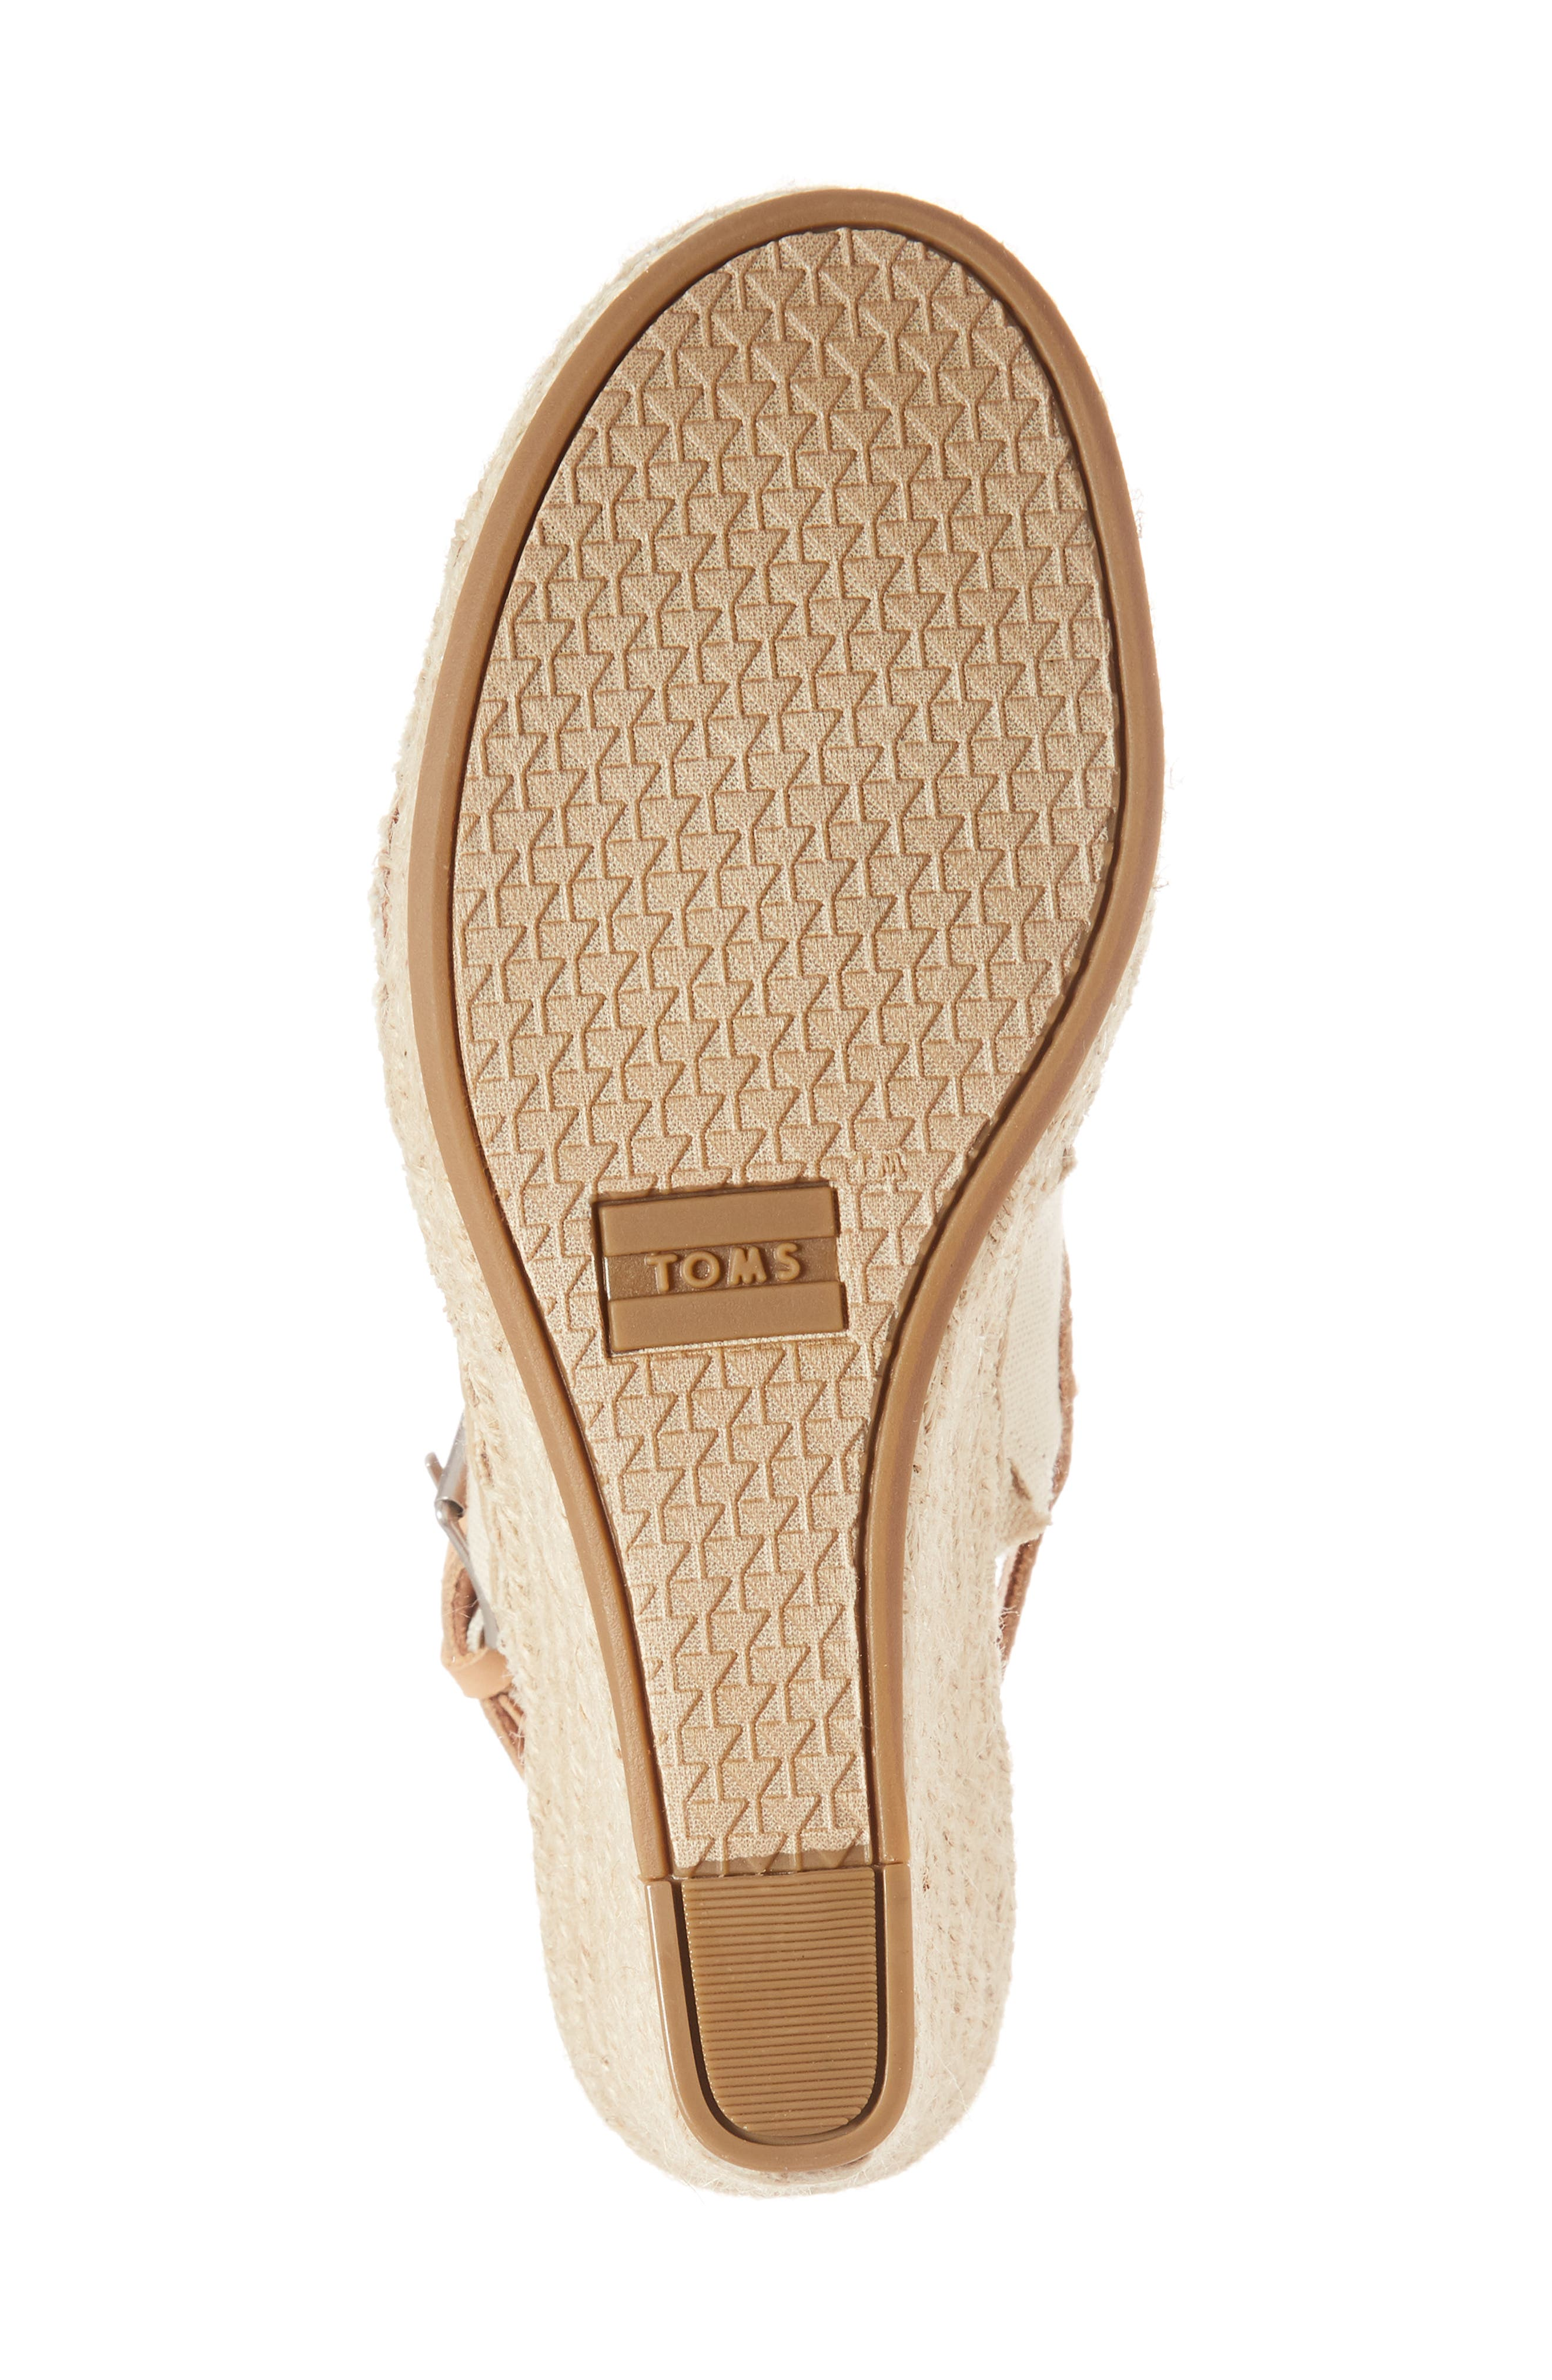 Monica Slingback Wedge,                             Alternate thumbnail 6, color,                             NATURAL HEMP/ LEATHER